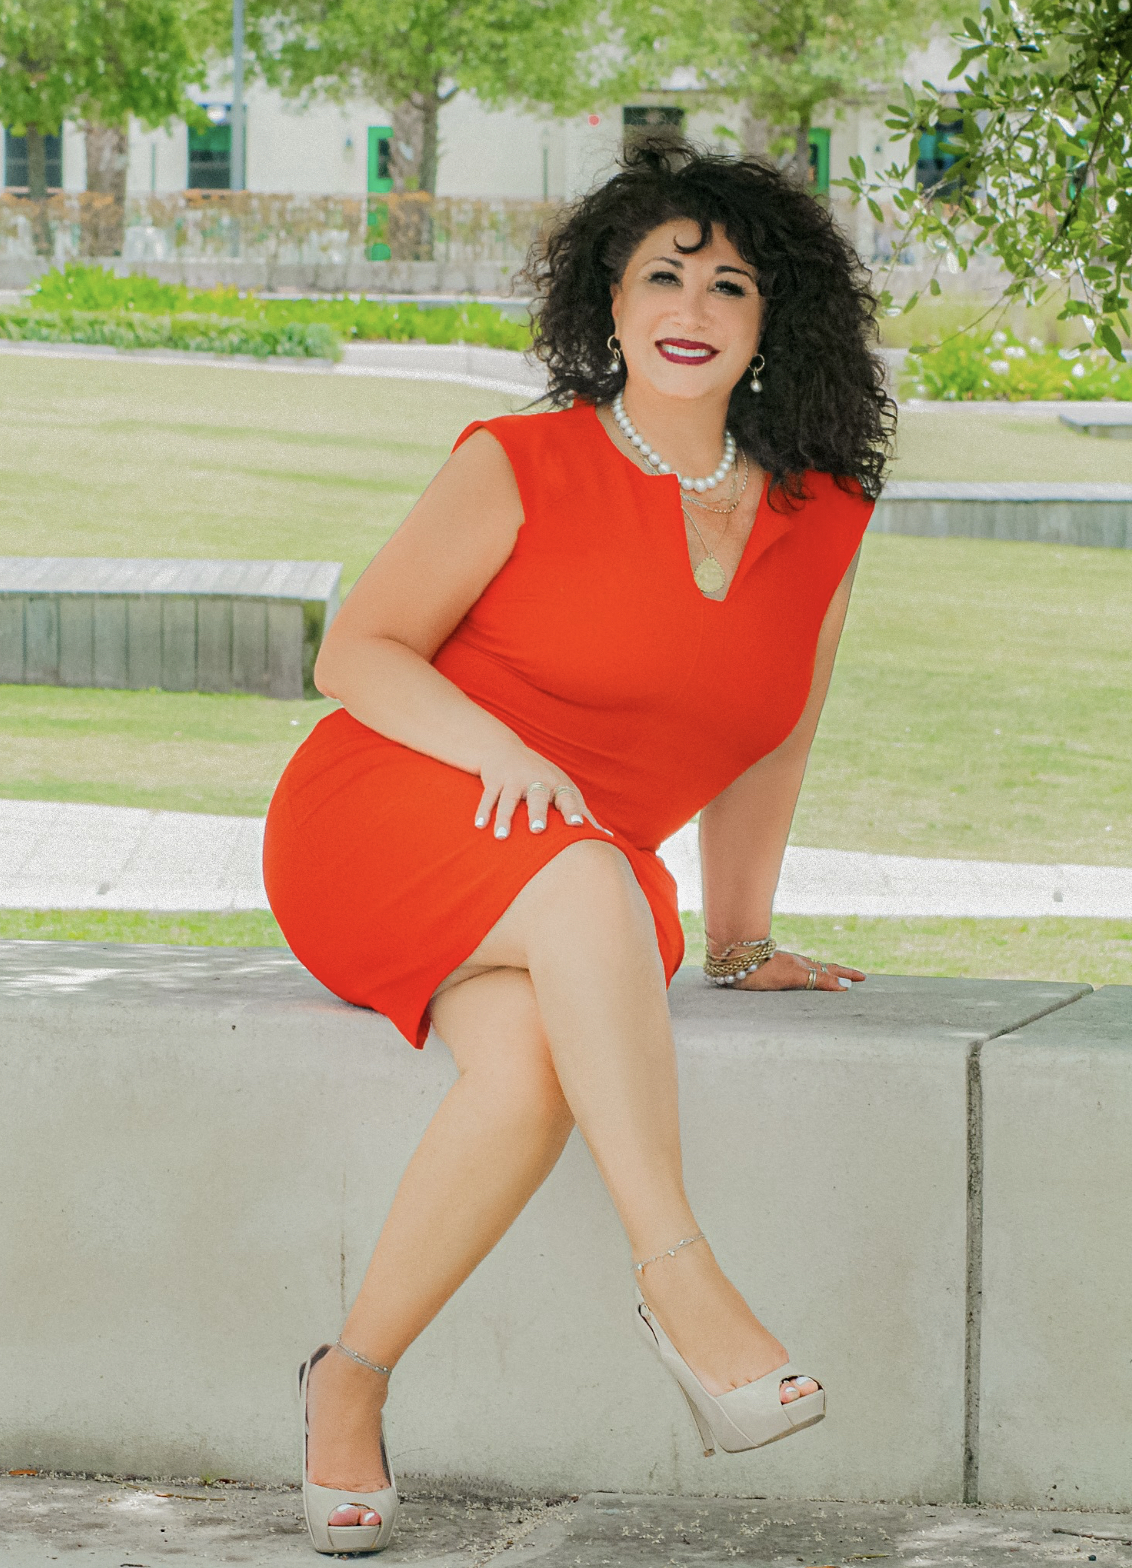 A woman with dark hair and a red dress sits with legs crossed outside looking at the camera.